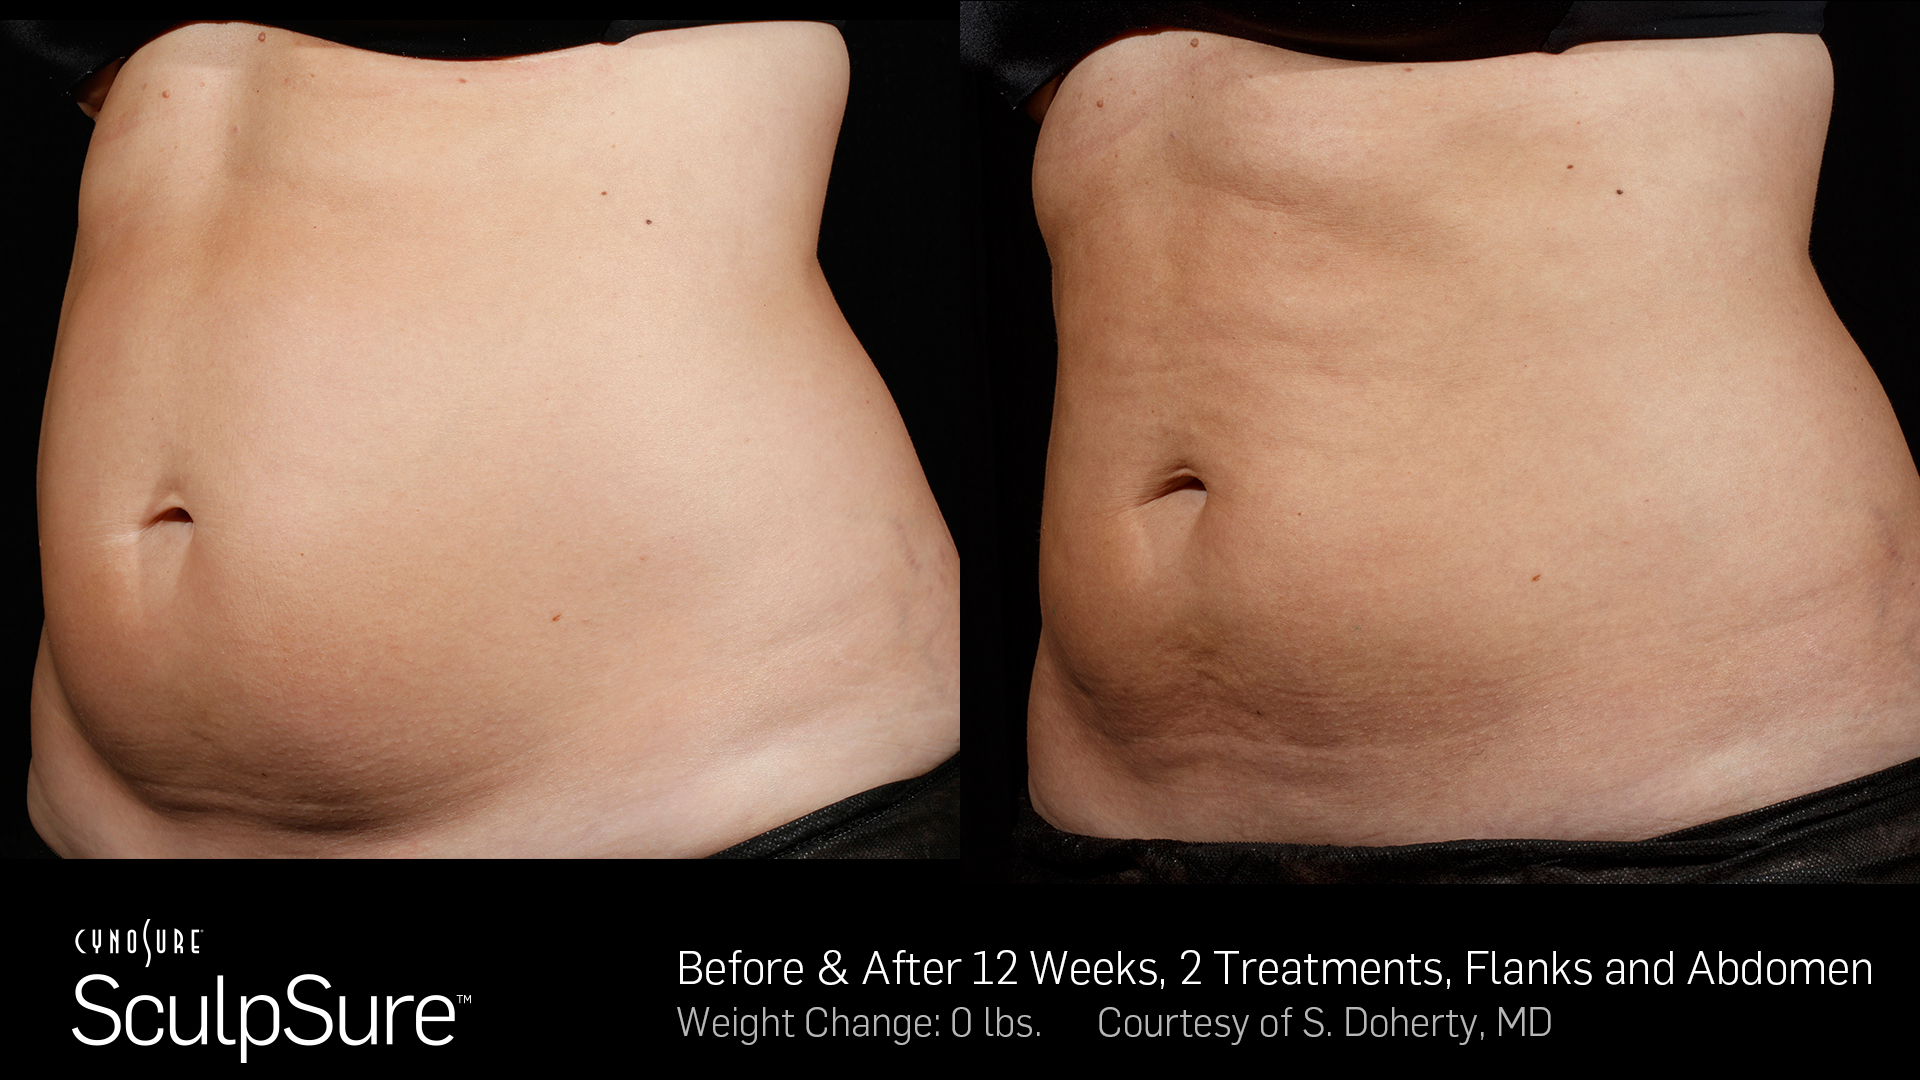 Before and after SculpSure treatments